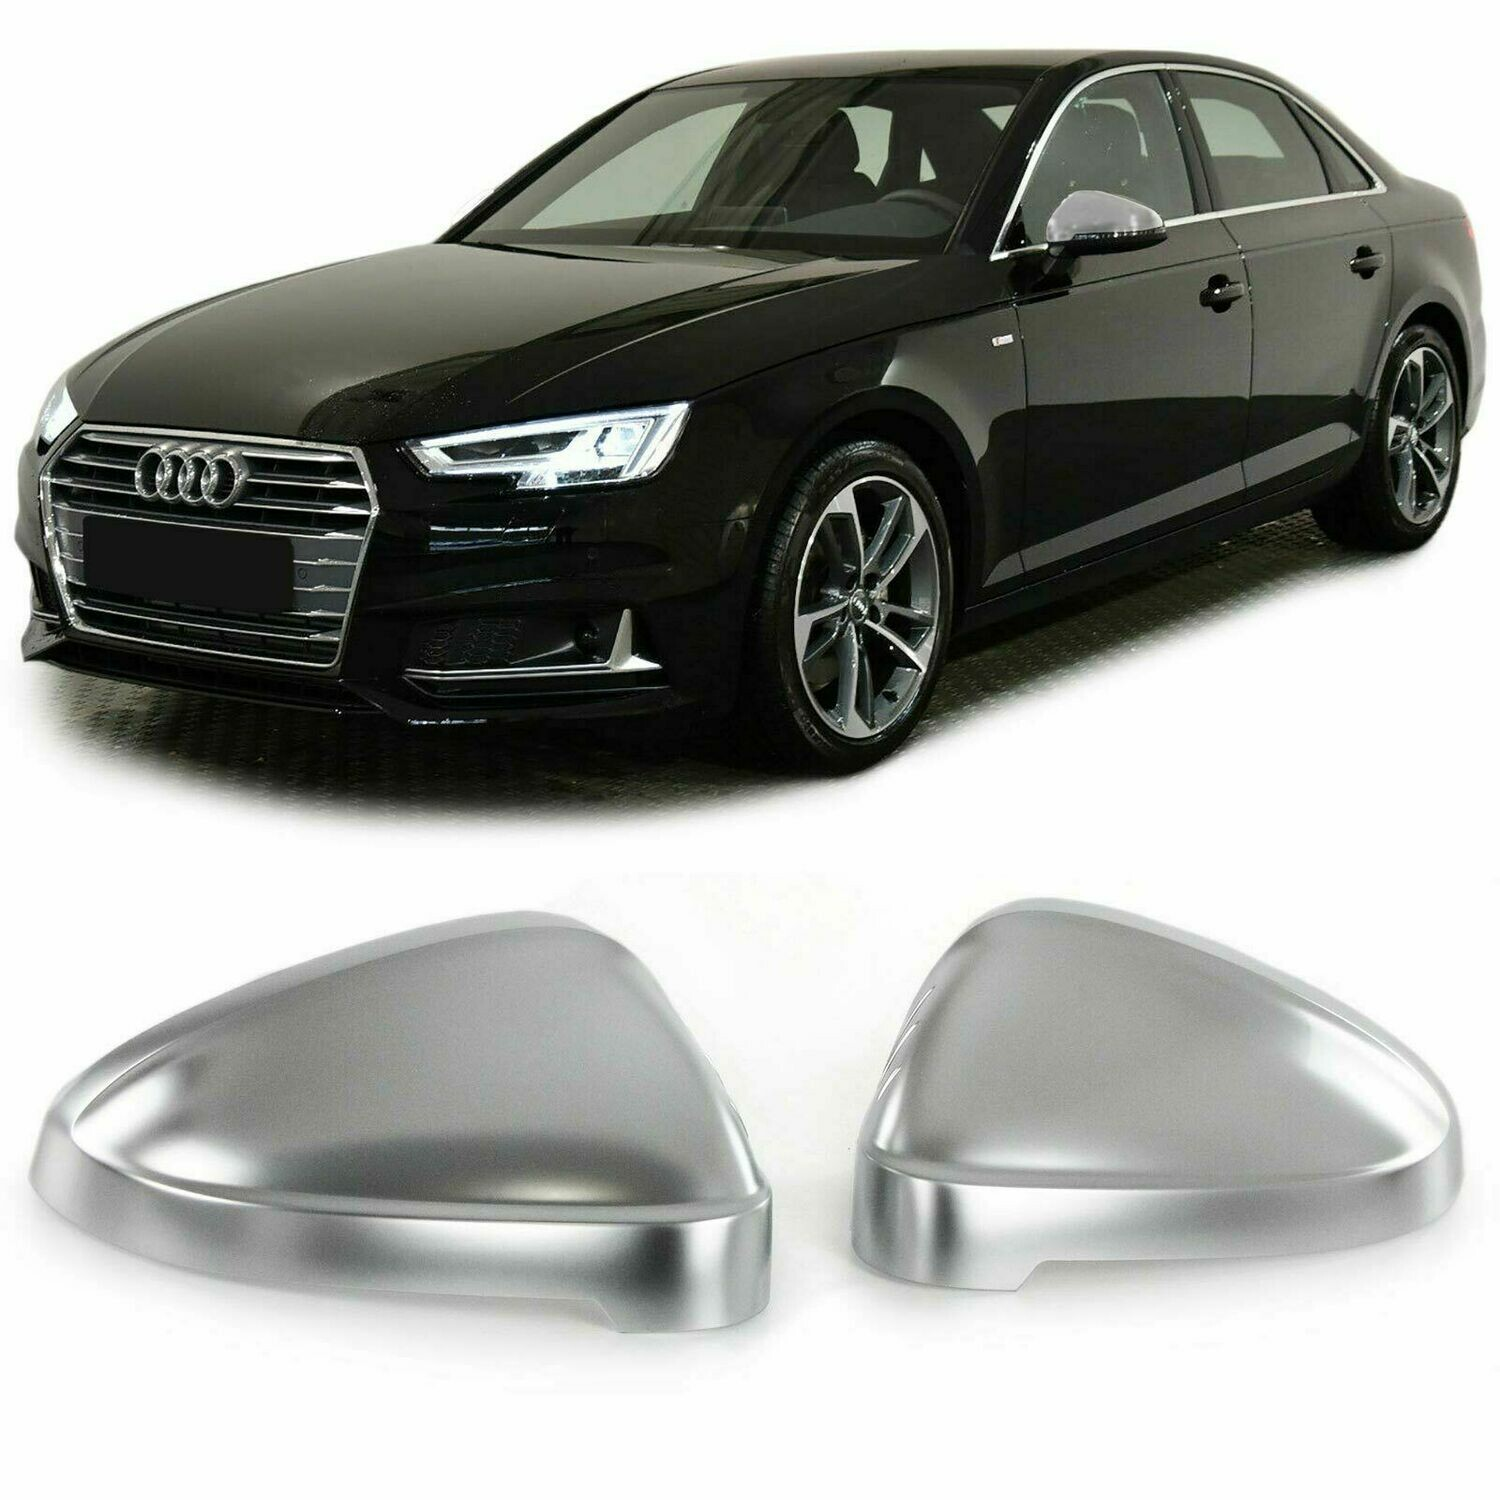 Mirrors Cover Silver for AUDI A4 S4 B9 8W 15-17 A5 S5 B9 8F